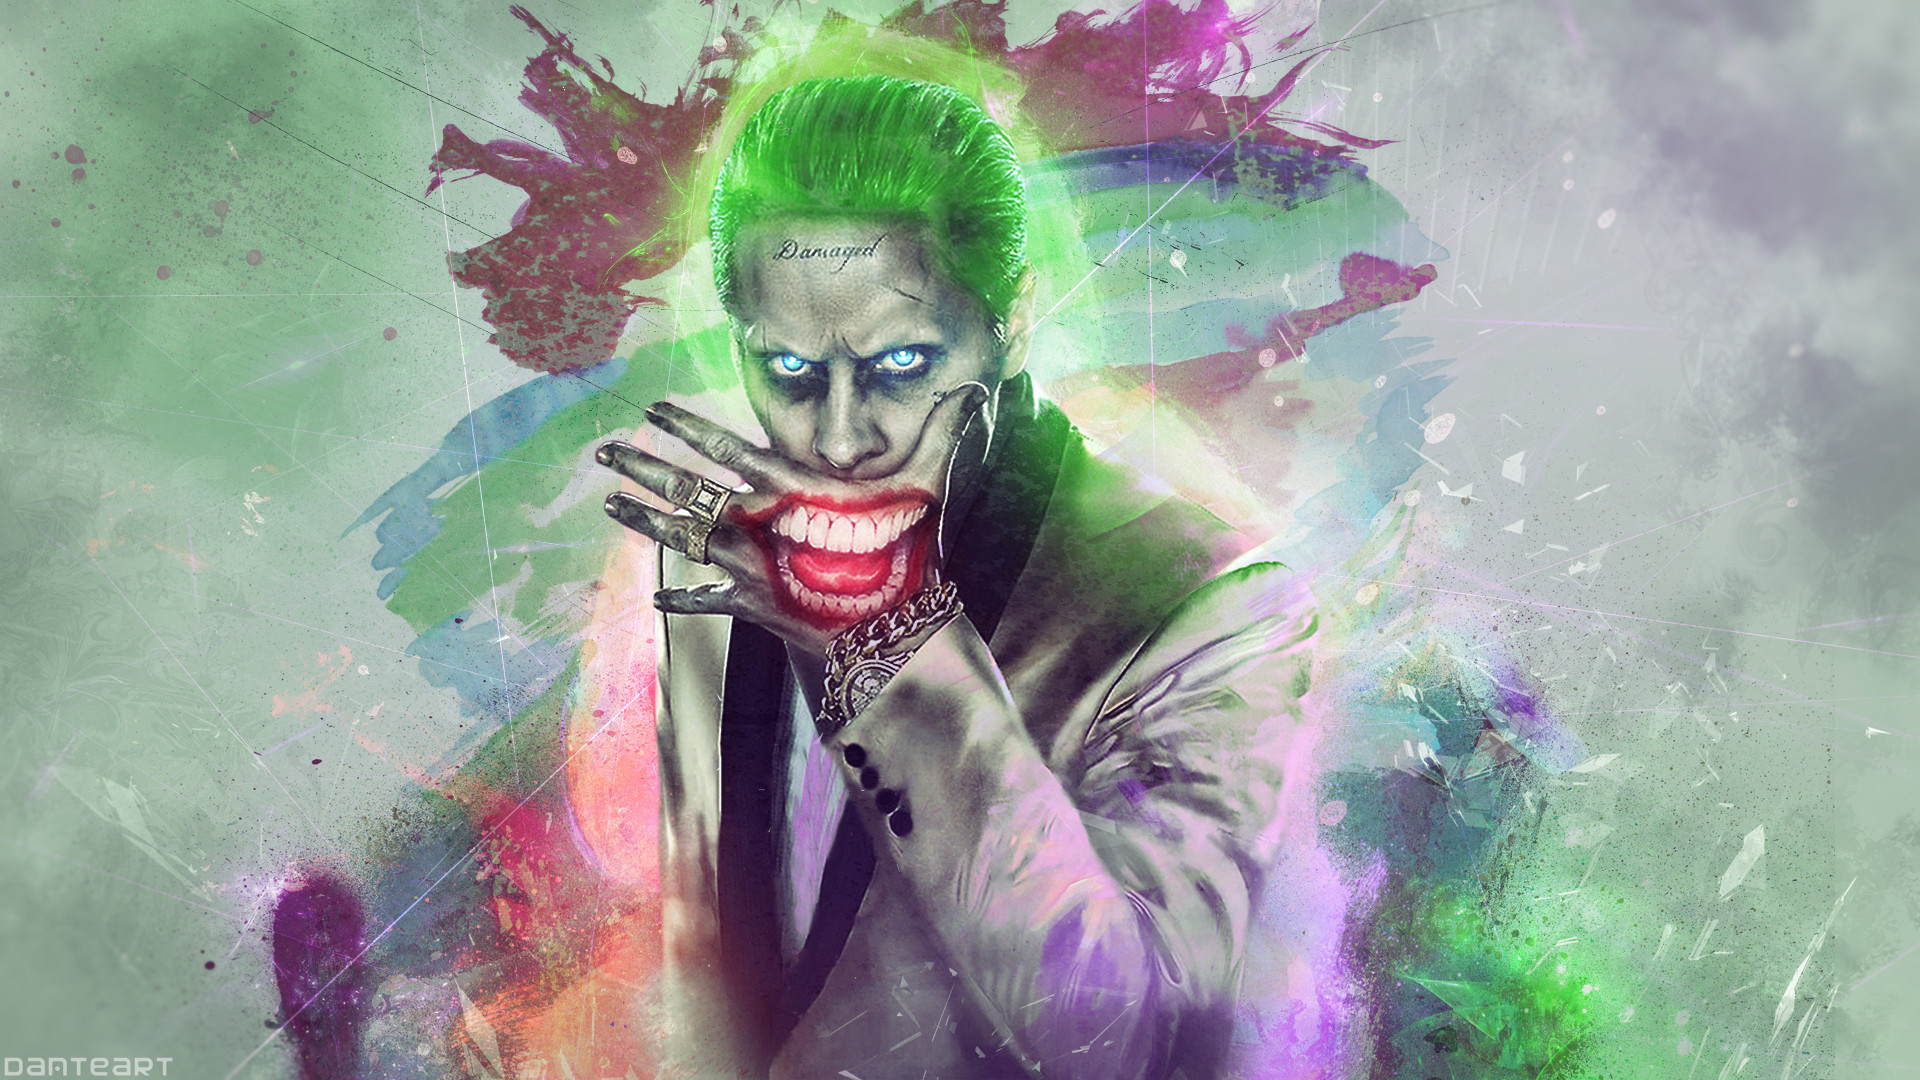 1920x1080 Suicide Squad The JOKER Wallpaper by DanteArtWallpapers Suicide Squad The JOKER  Wallpaper by DanteArtWallpapers